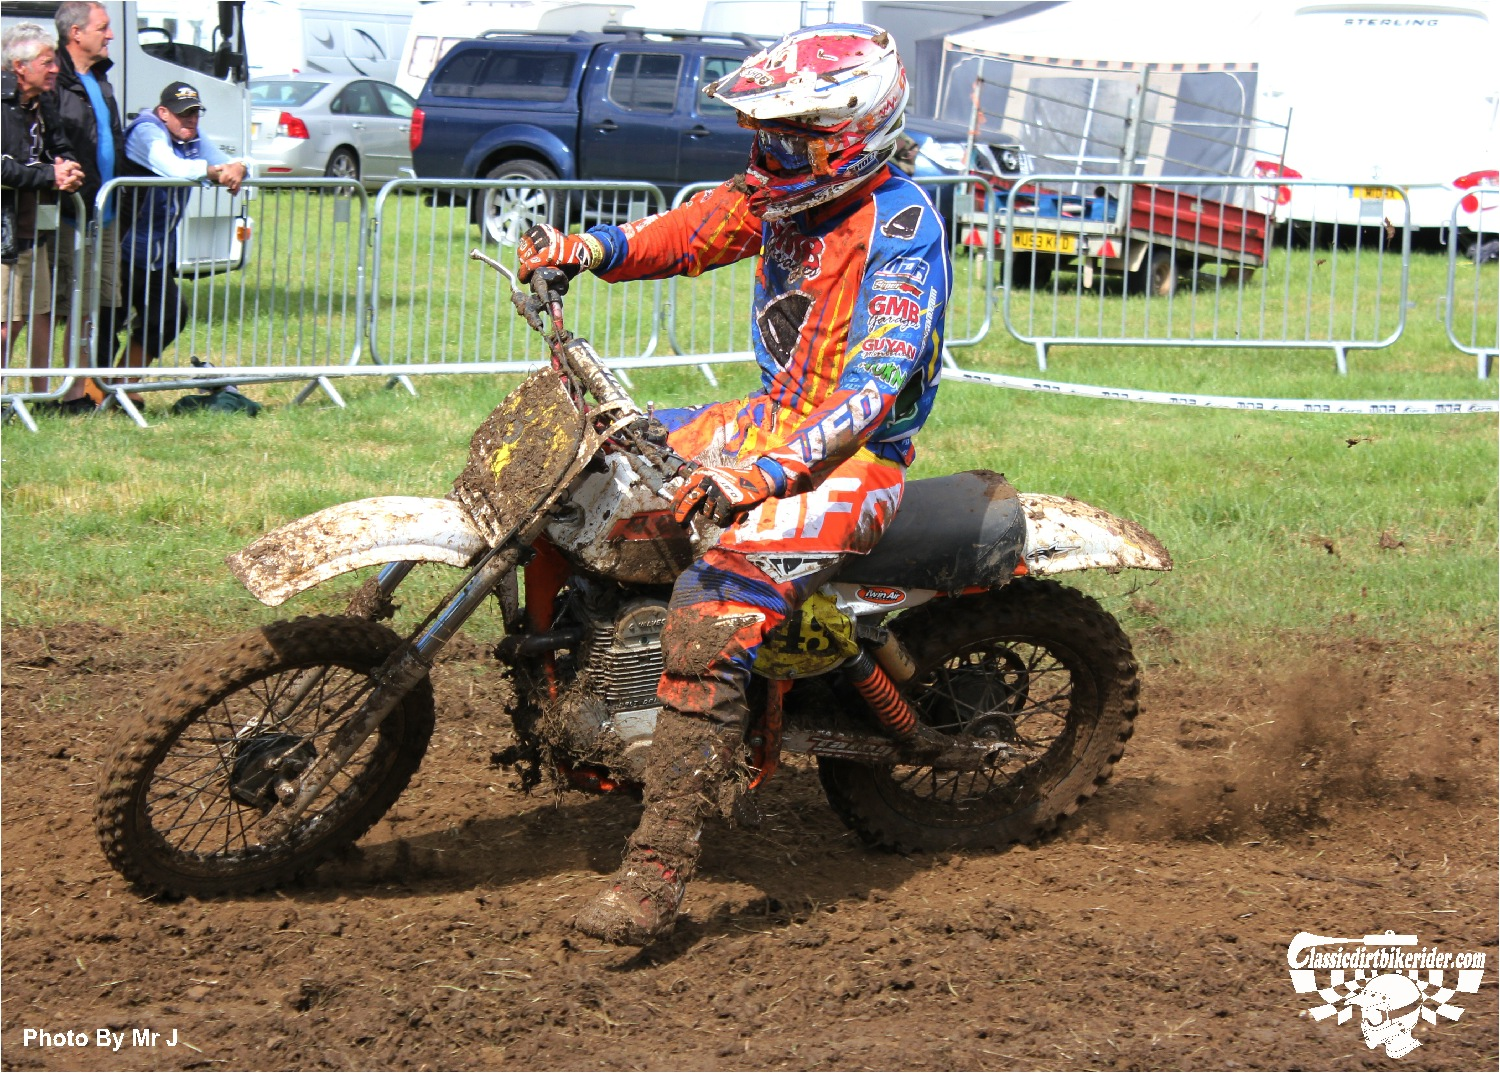 king of the castle 2015 photos Farleigh Castle twinshock motocross classicdirtbikerider.com 81